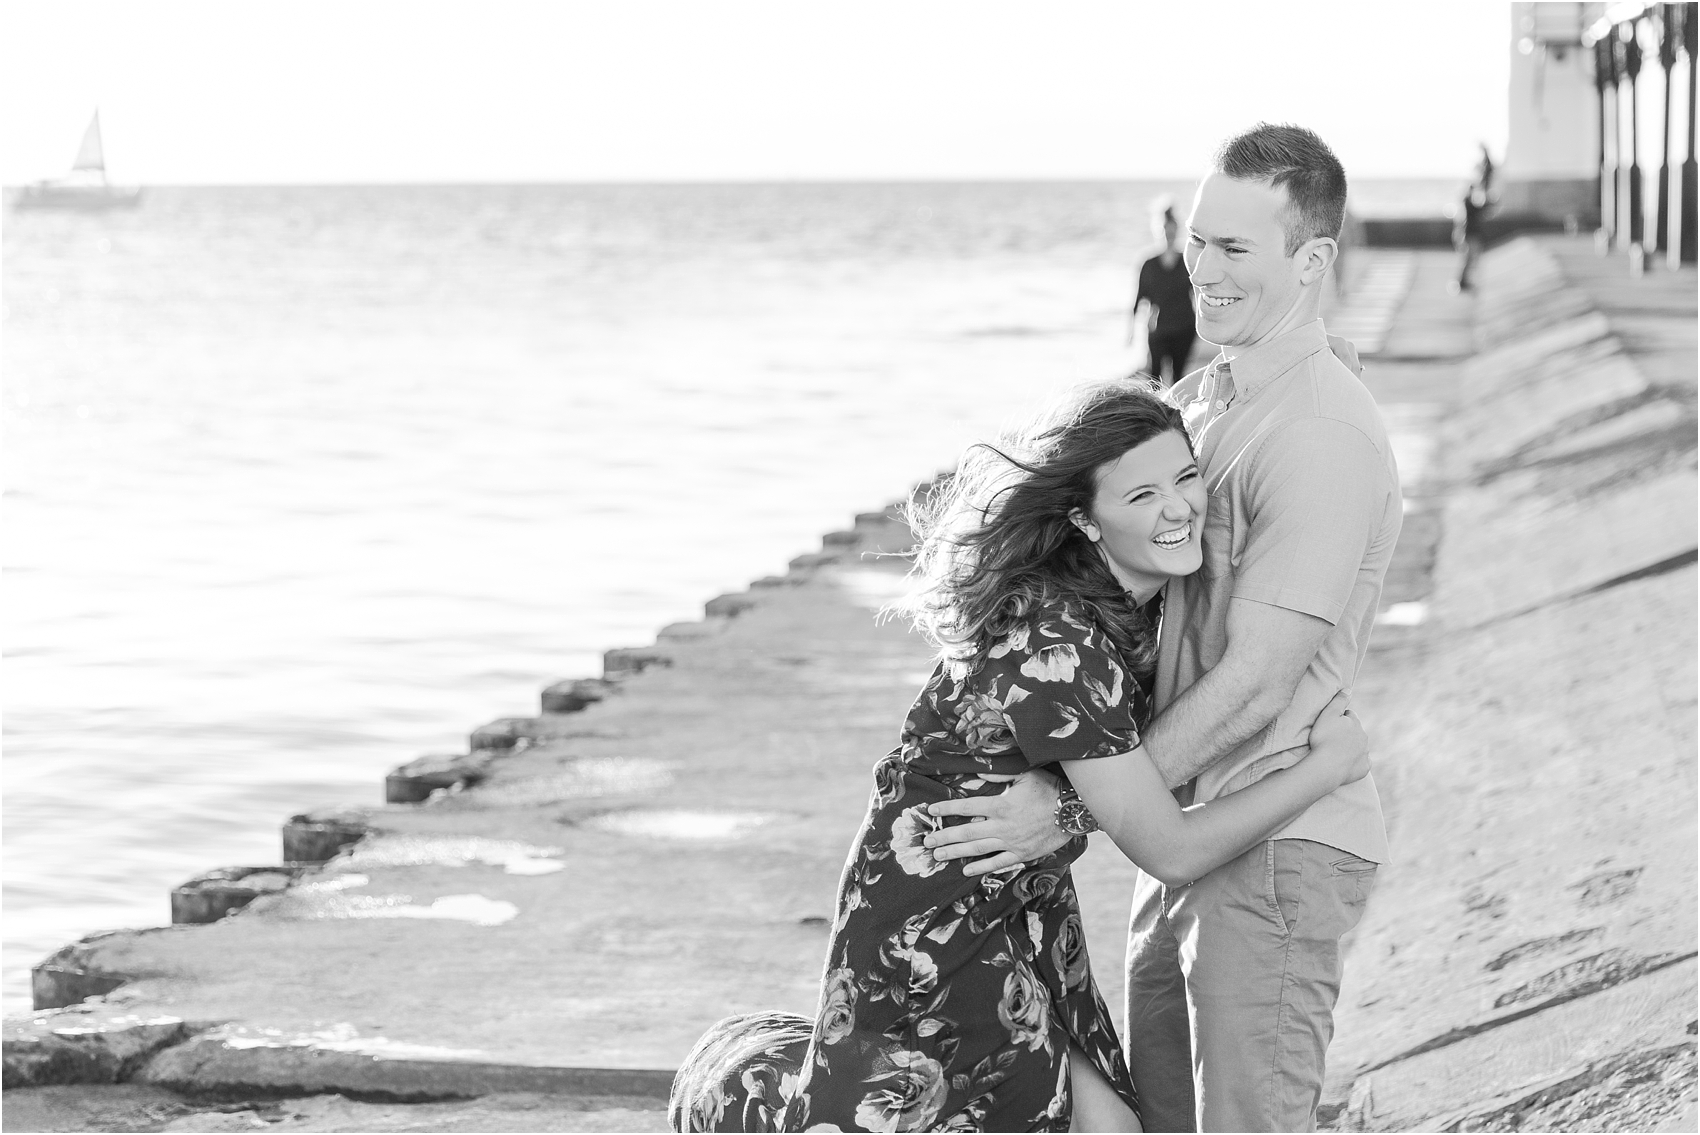 candid-end-of-summer-sunset-engagement-photos-at-silver-beach-in-st-joseph-mi-by-courtney-carolyn-photography_0005.jpg